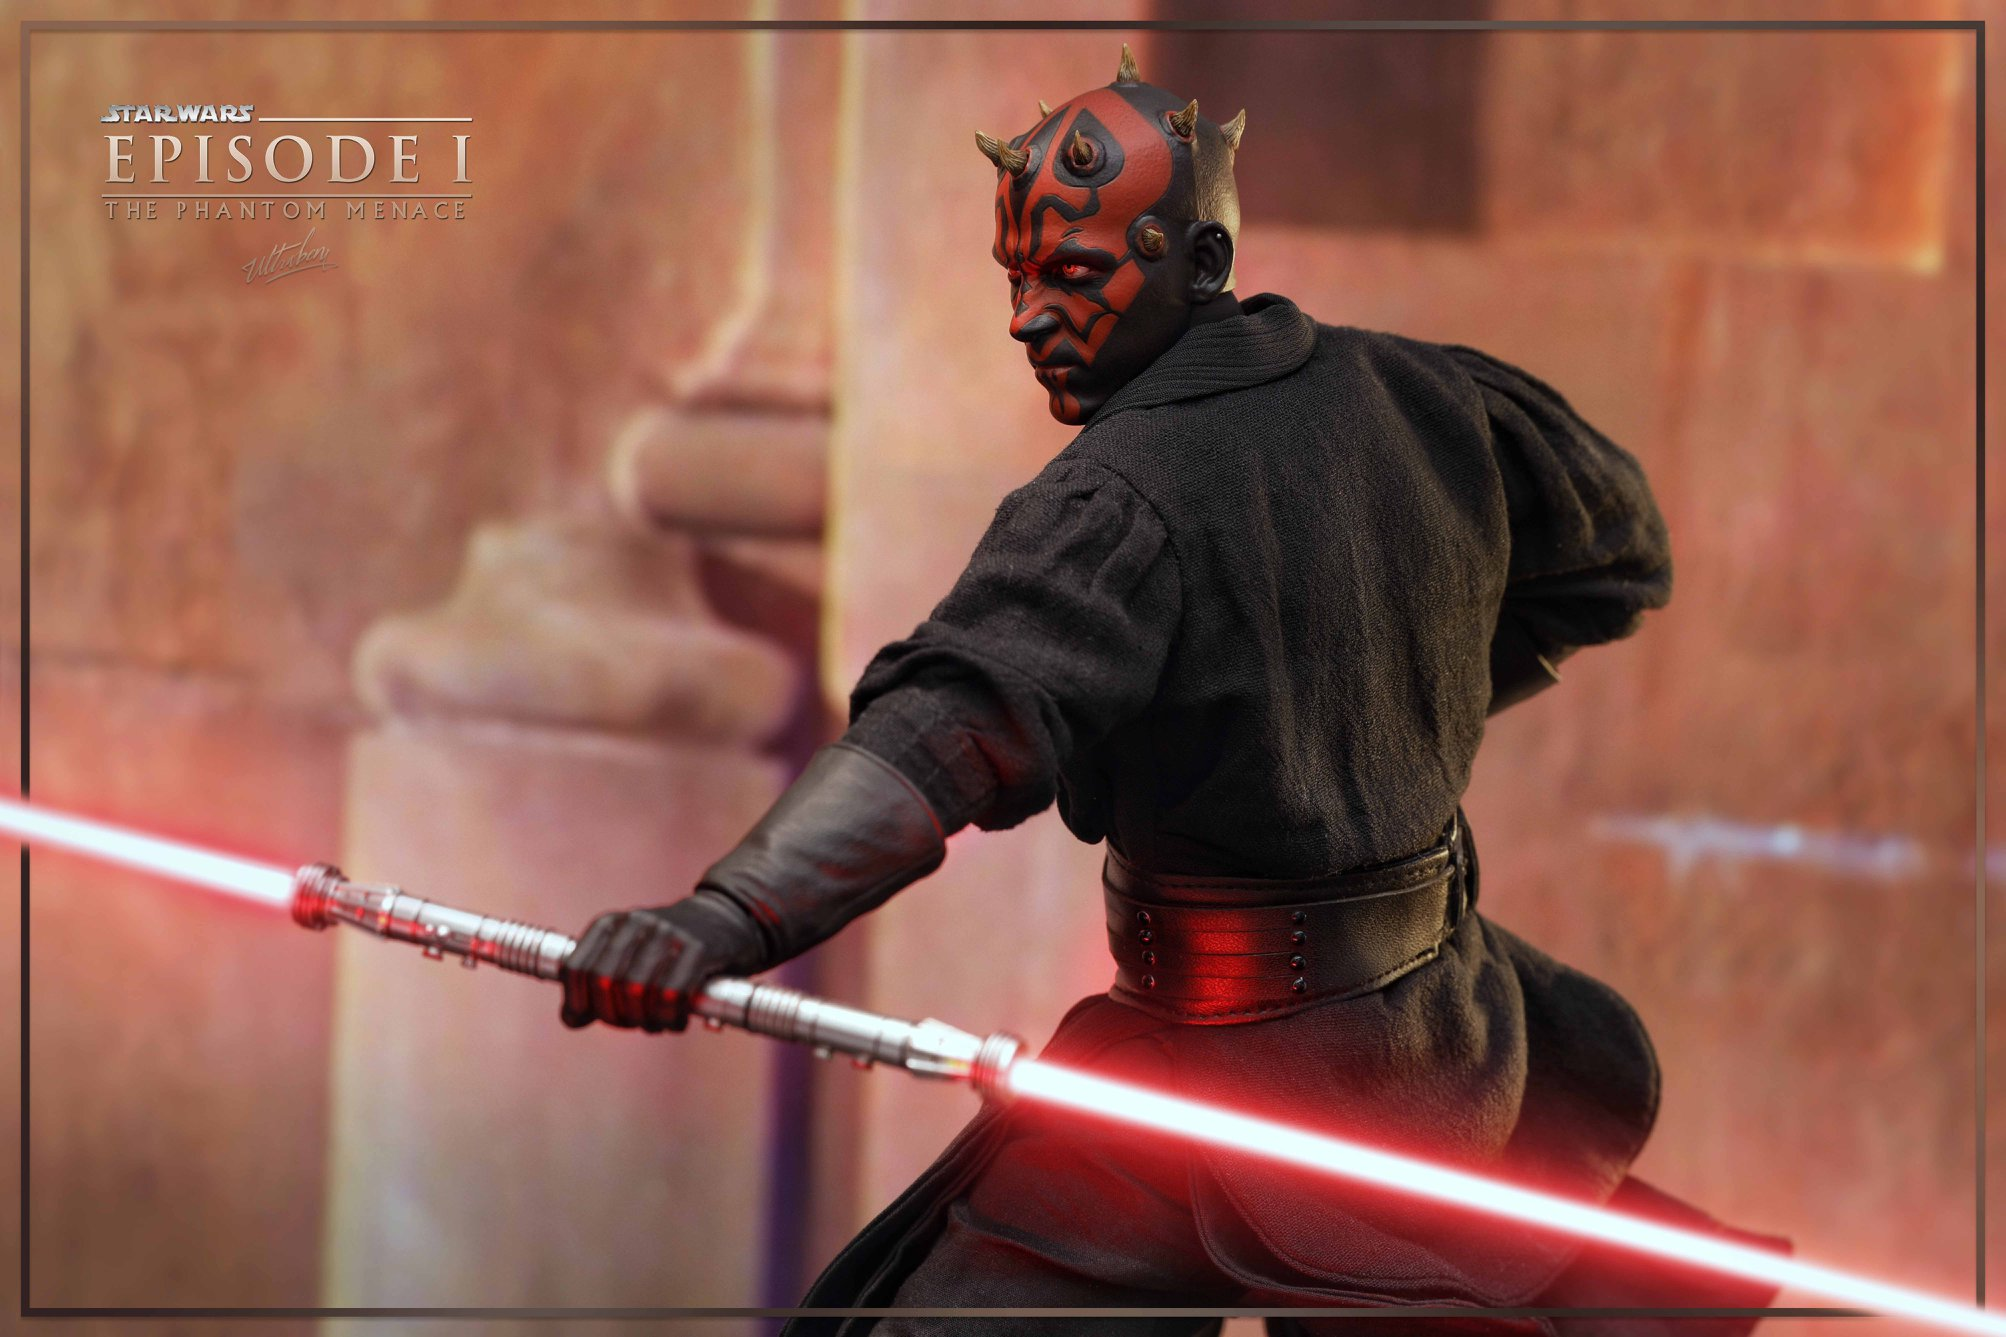 Movie Star Wars Episode I The Phantom Menace Star Wars - Hot Toys Darth Maul Poses , HD Wallpaper & Backgrounds